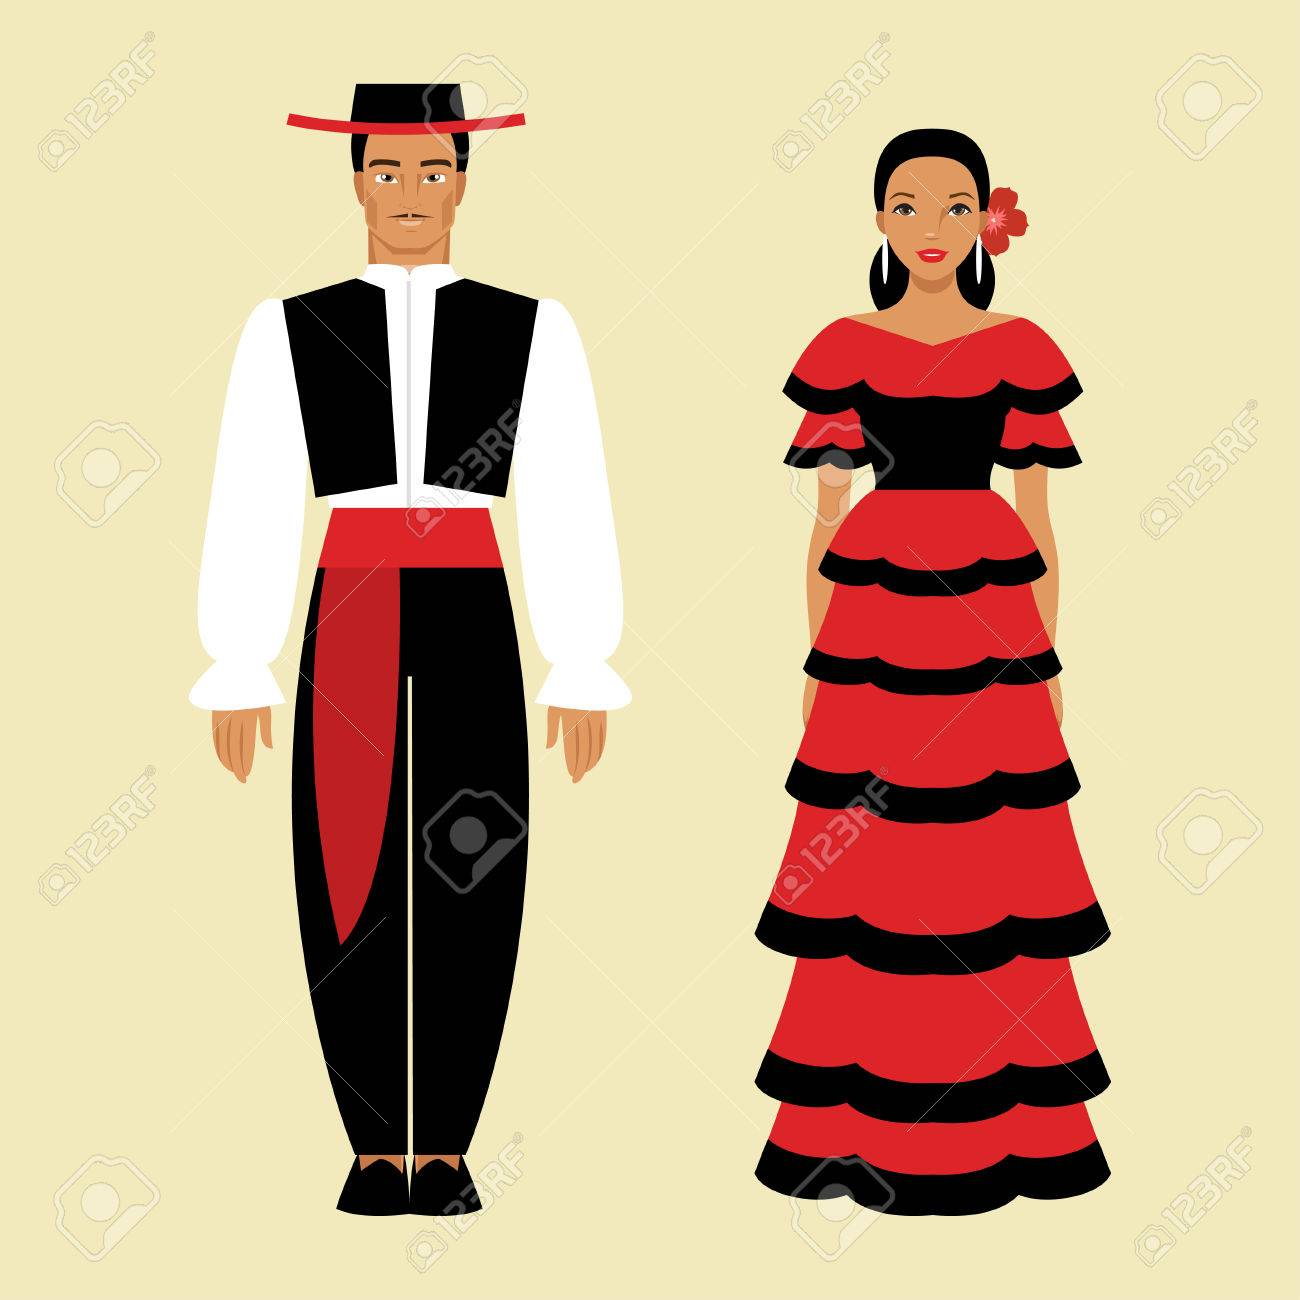 Illustration Of Spanish Men And Women In National Costume Royalty